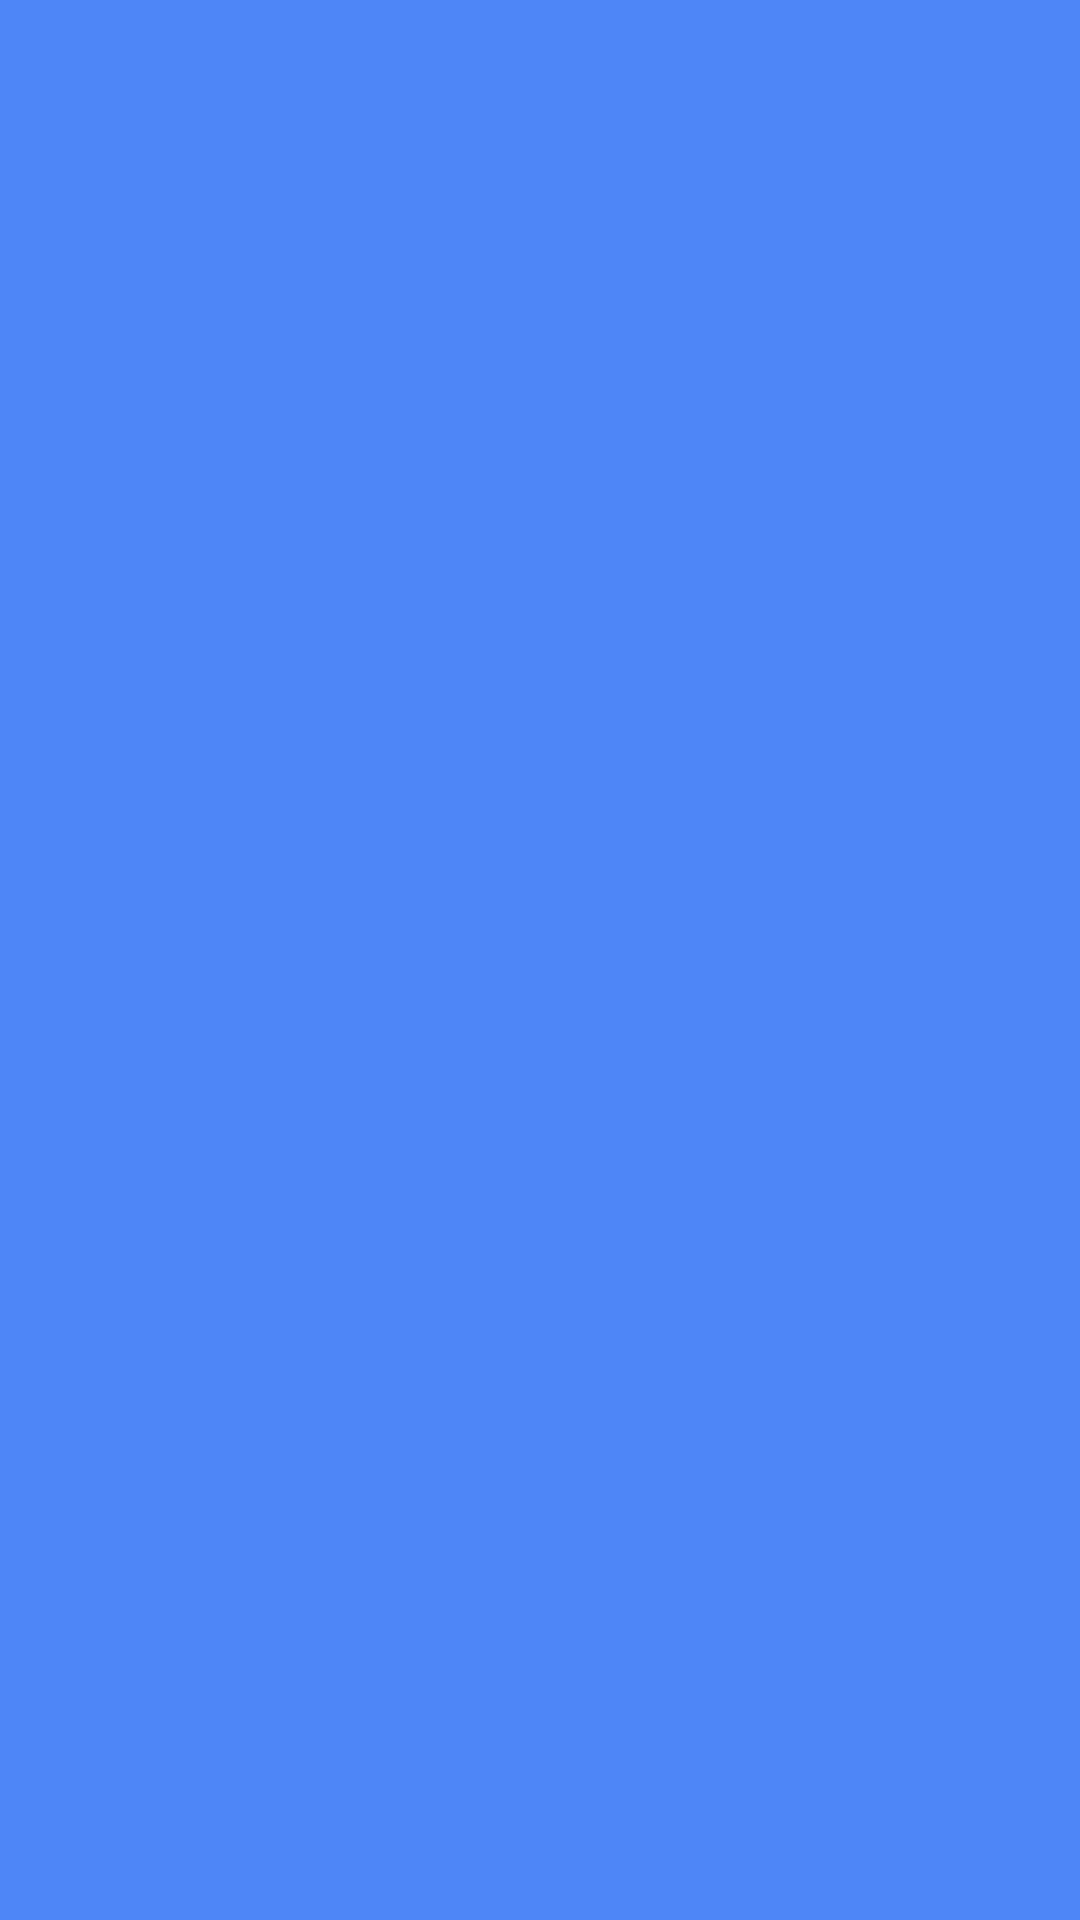 1080x1920 Blueberry Solid Color Background